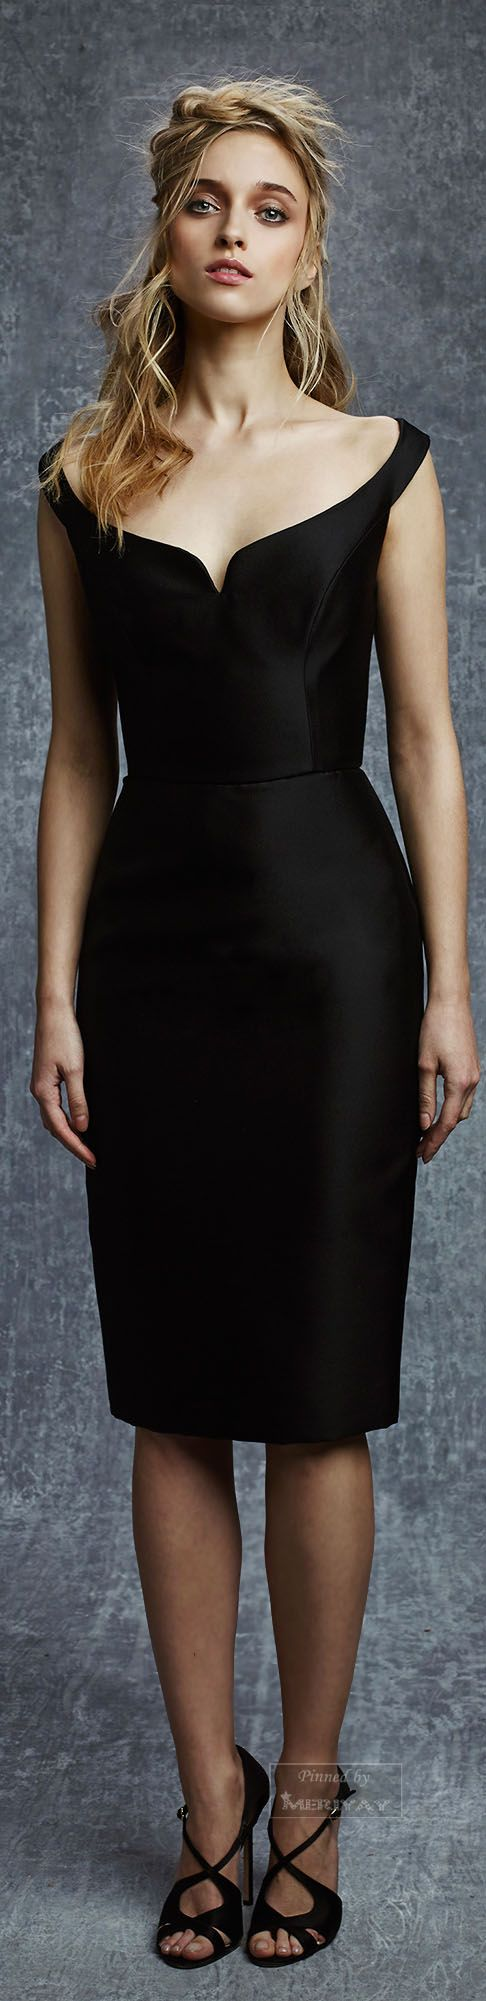 Reem Acra I Had This Only Shorter And In The 60s I Was Younger Then And Looked Good In It I Made It Myself For New Ye Black Dress Little Black [ 2001 x 486 Pixel ]